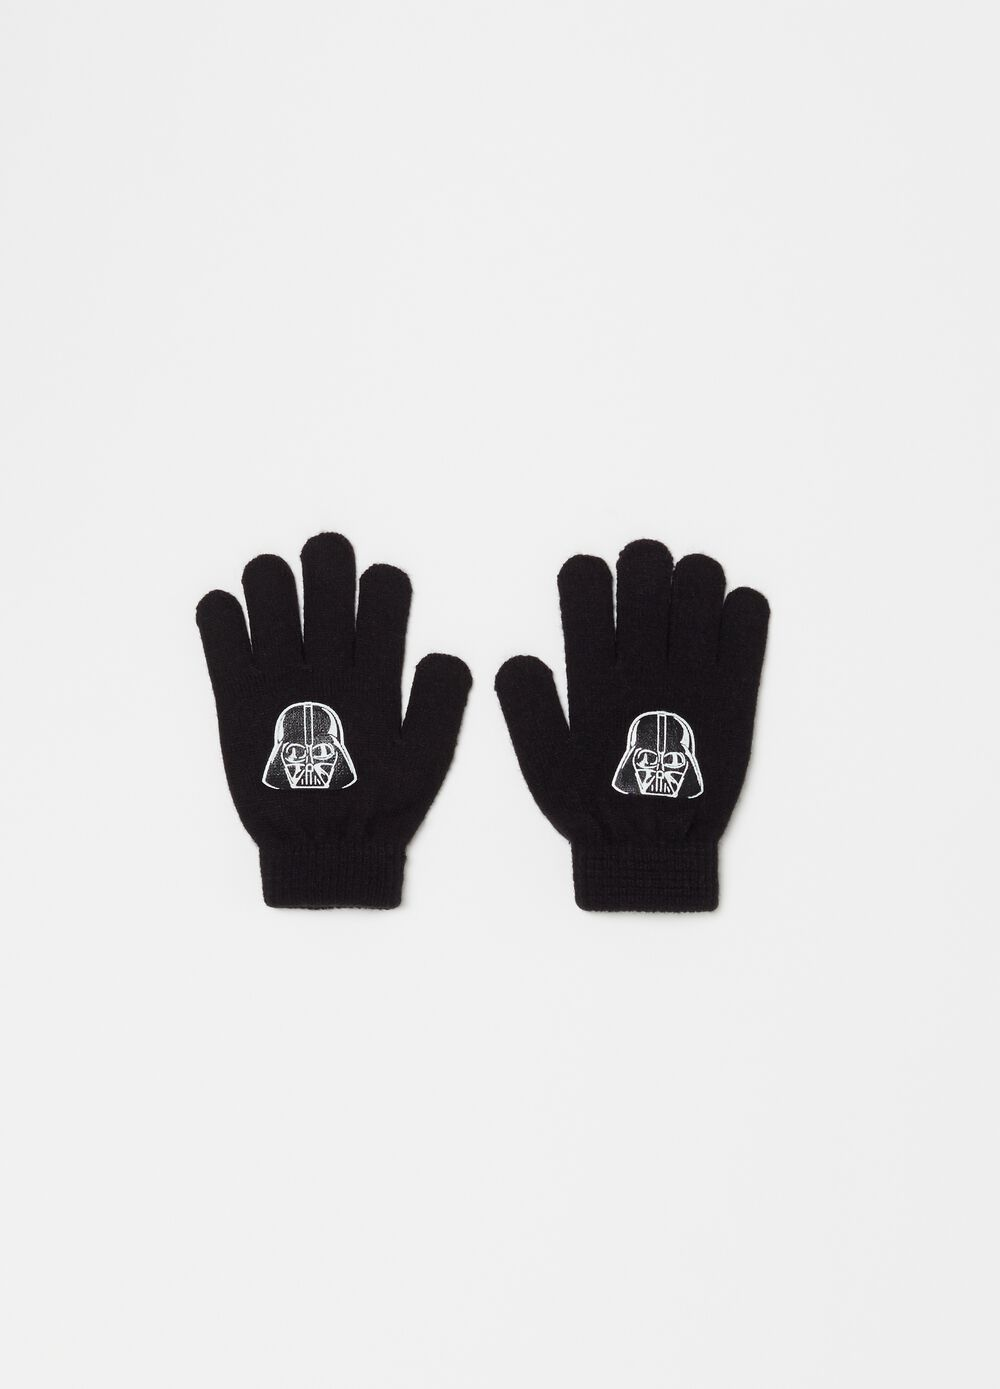 Knitted Star Wars gloves with ribbing